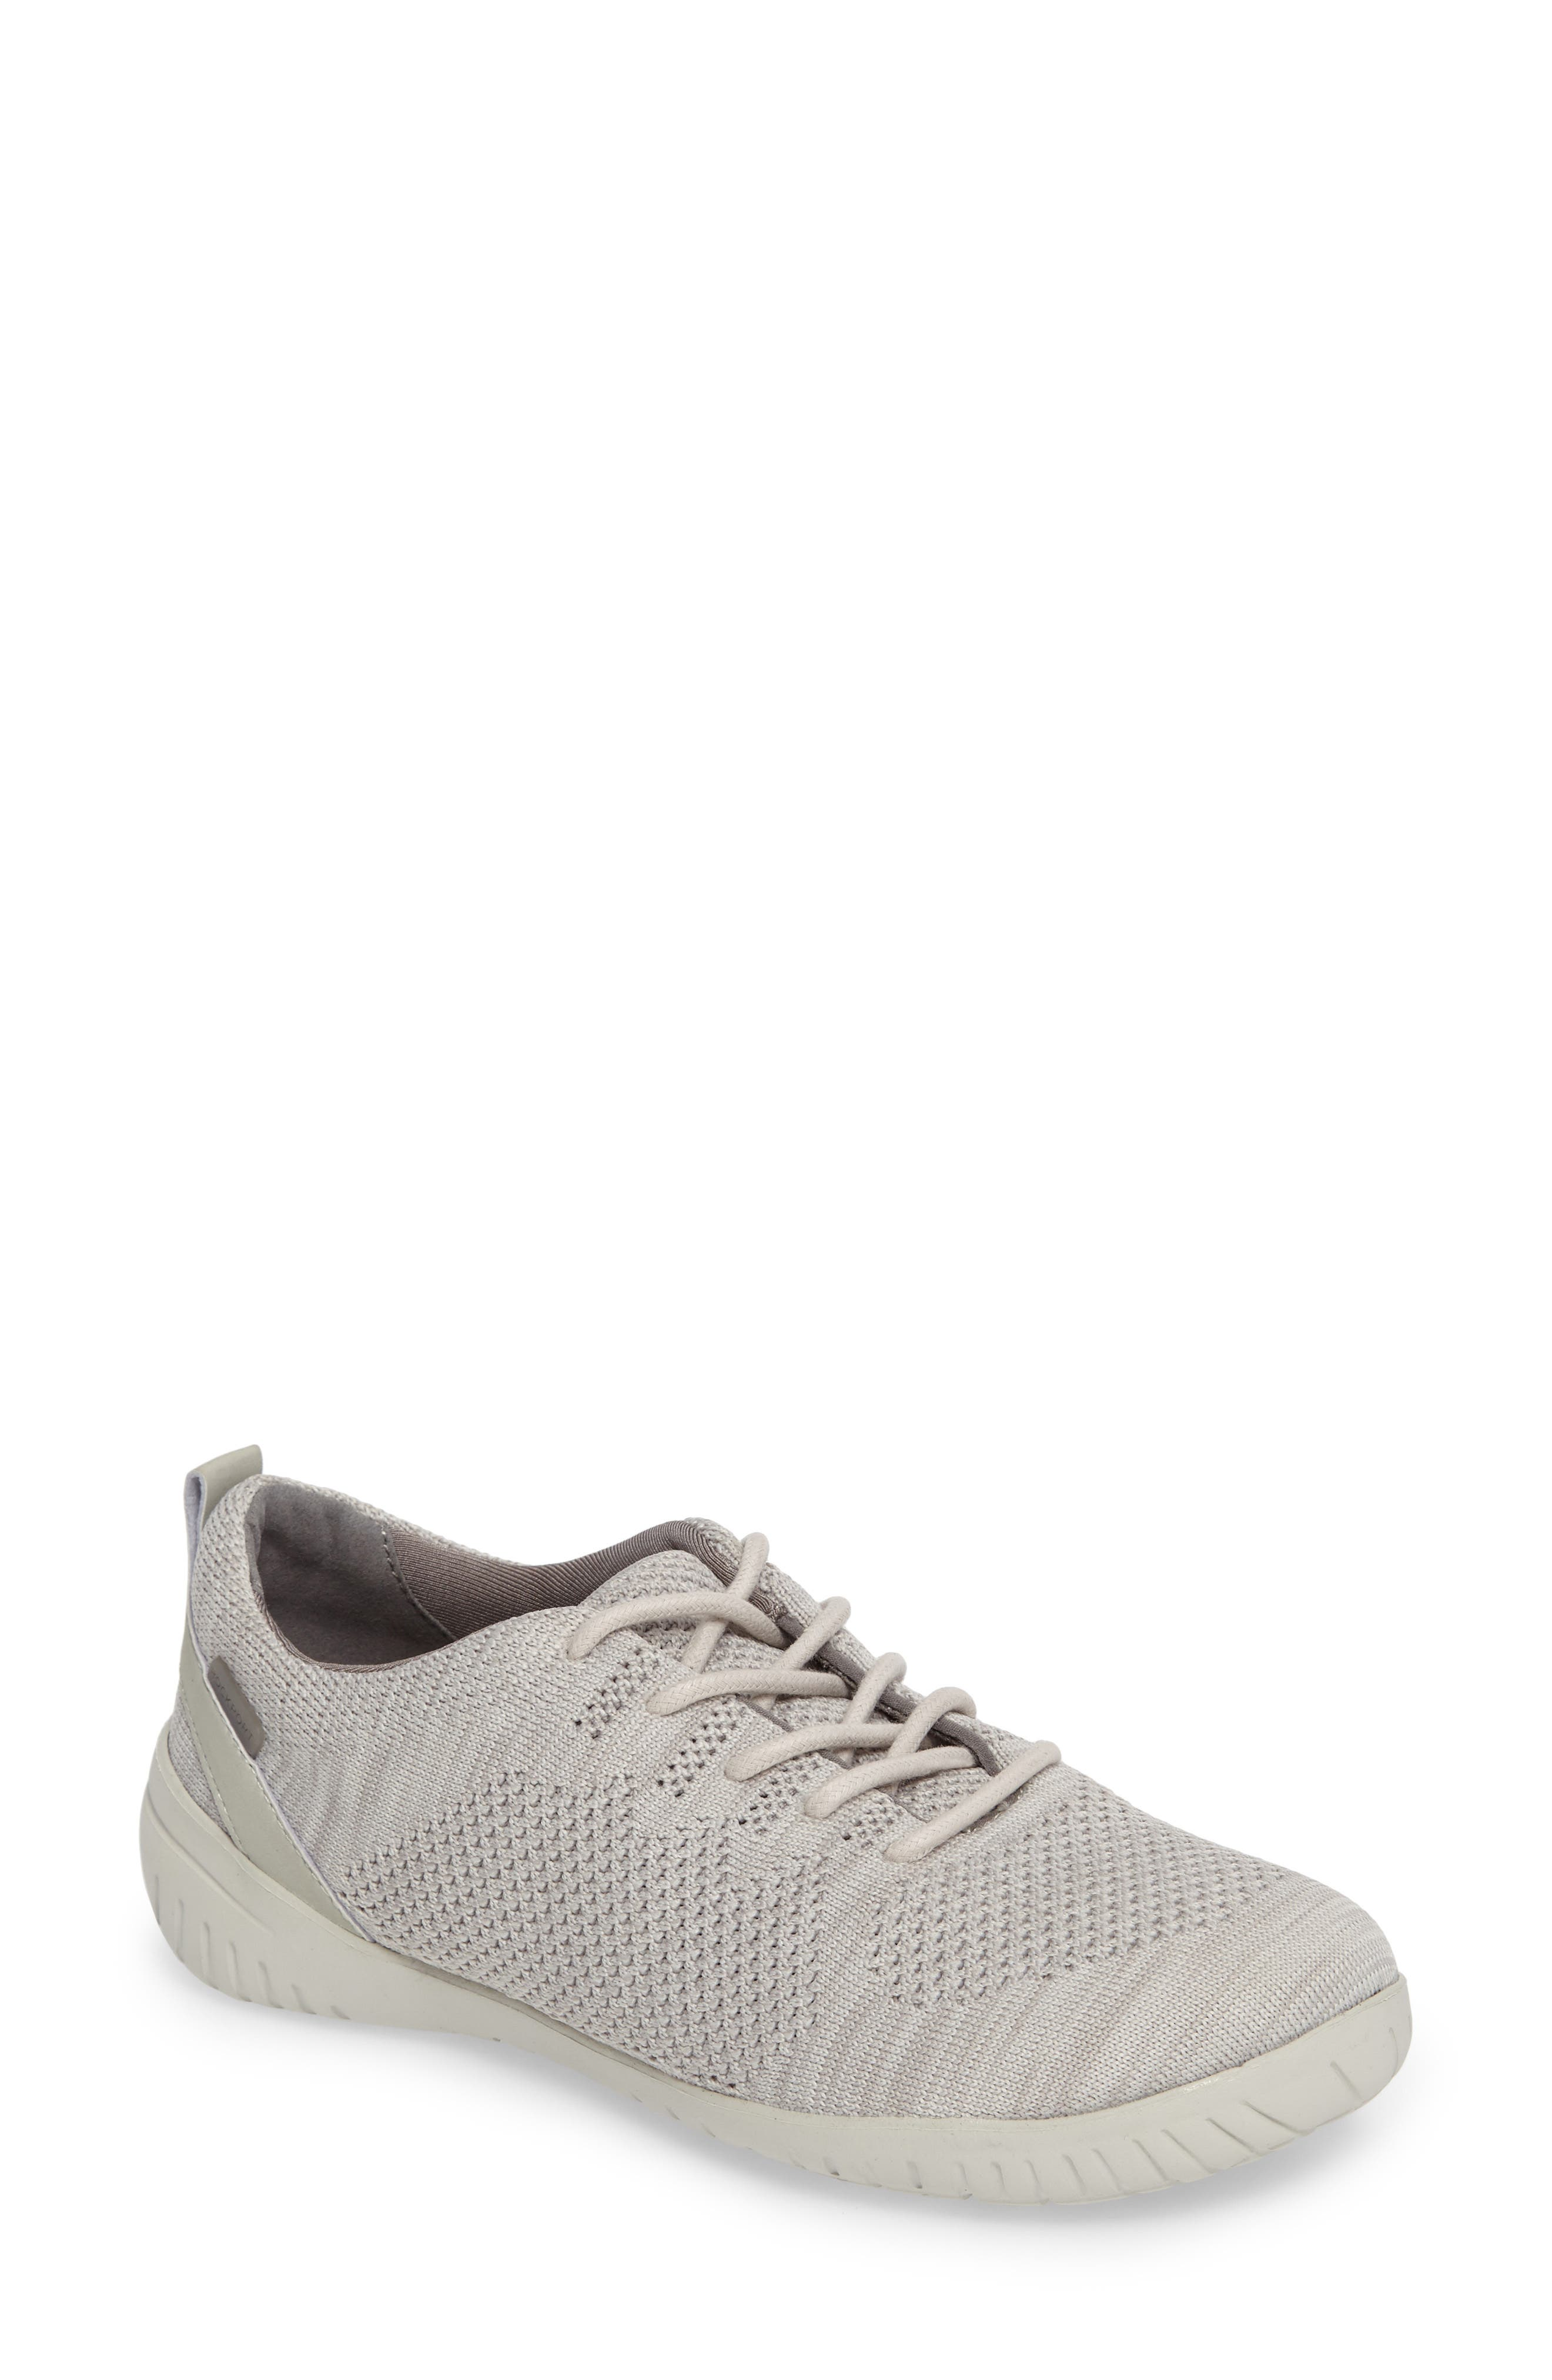 Raelyn Knit Sneaker,                         Main,                         color, 020